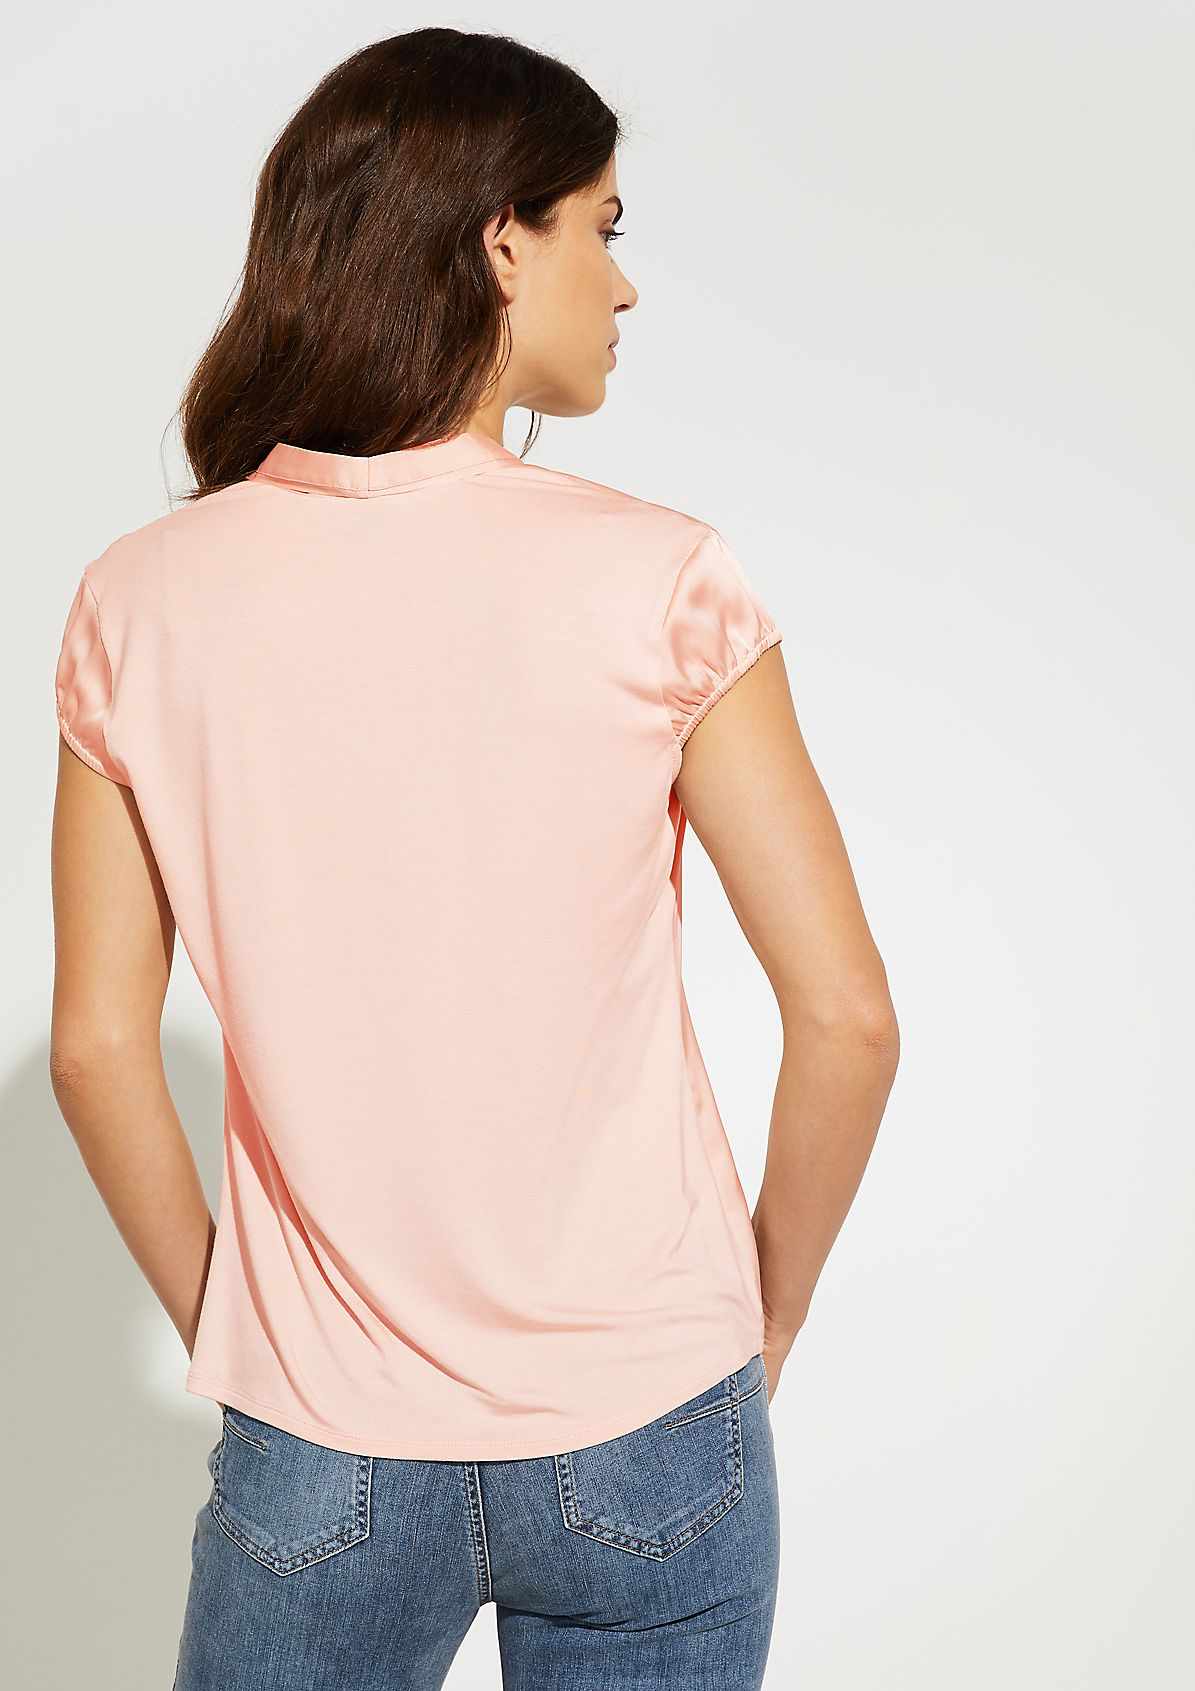 Blouse top with satin front from comma